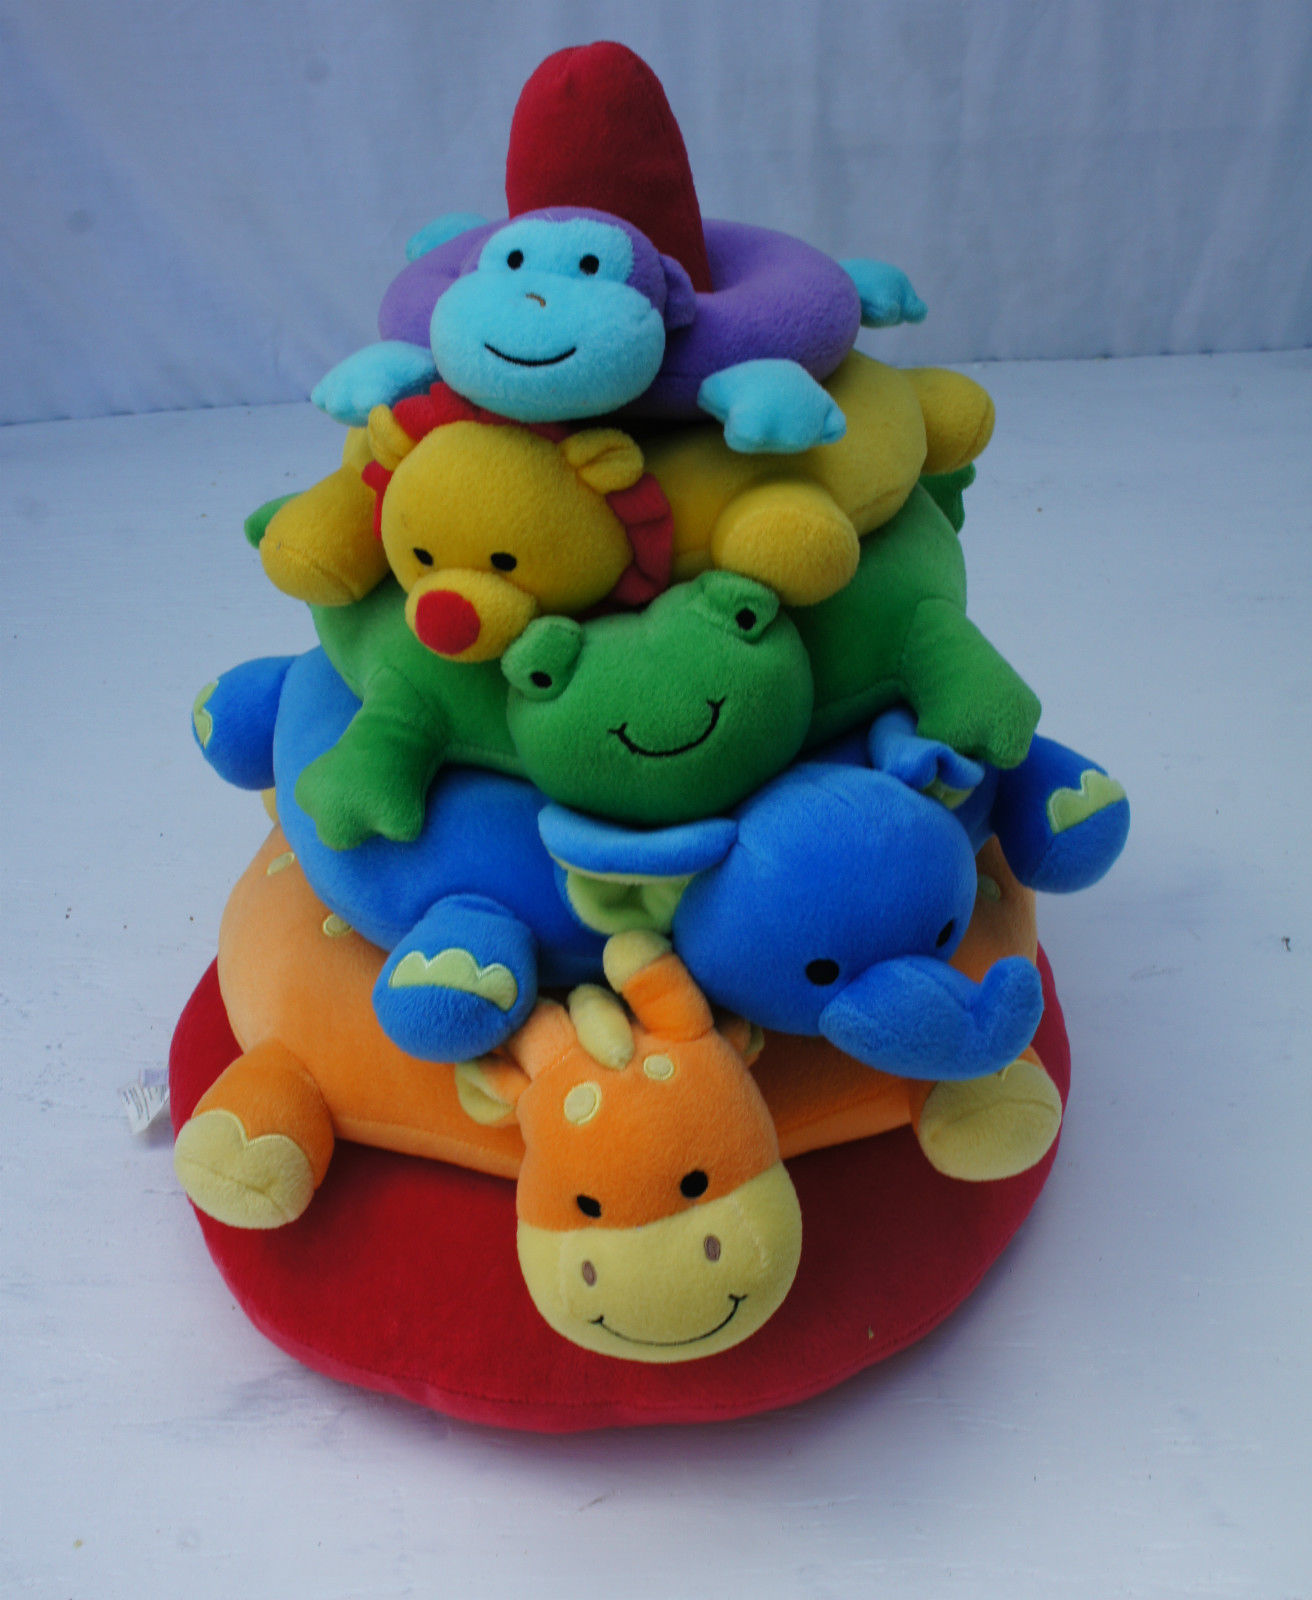 Koala Baby Stacker Animals Rings Toy Multi Color Red Soft